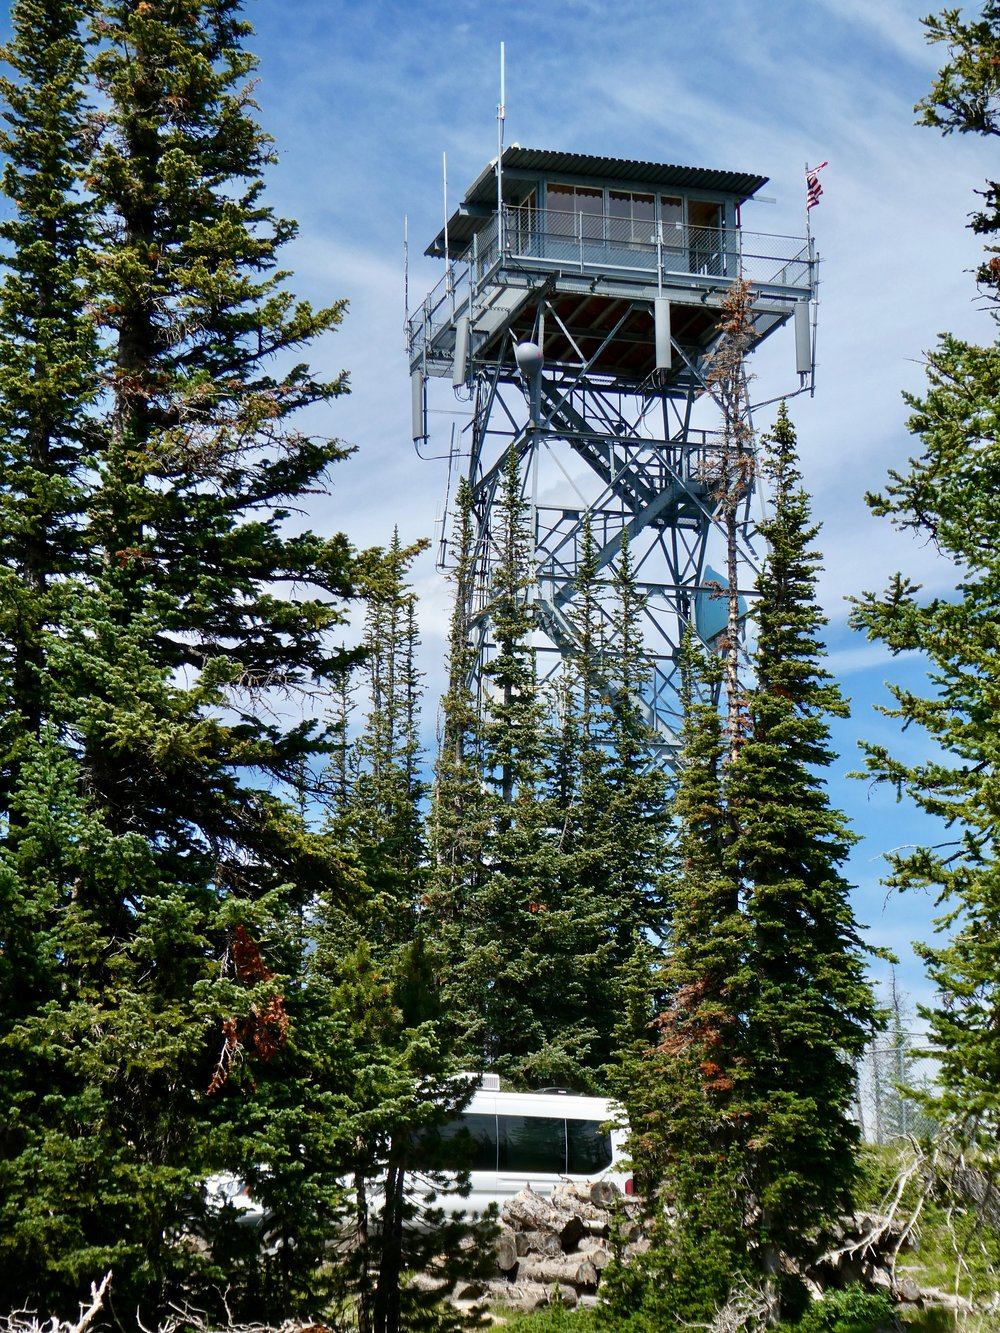 The Deadman Fire Lookout Tower, now open for tours.